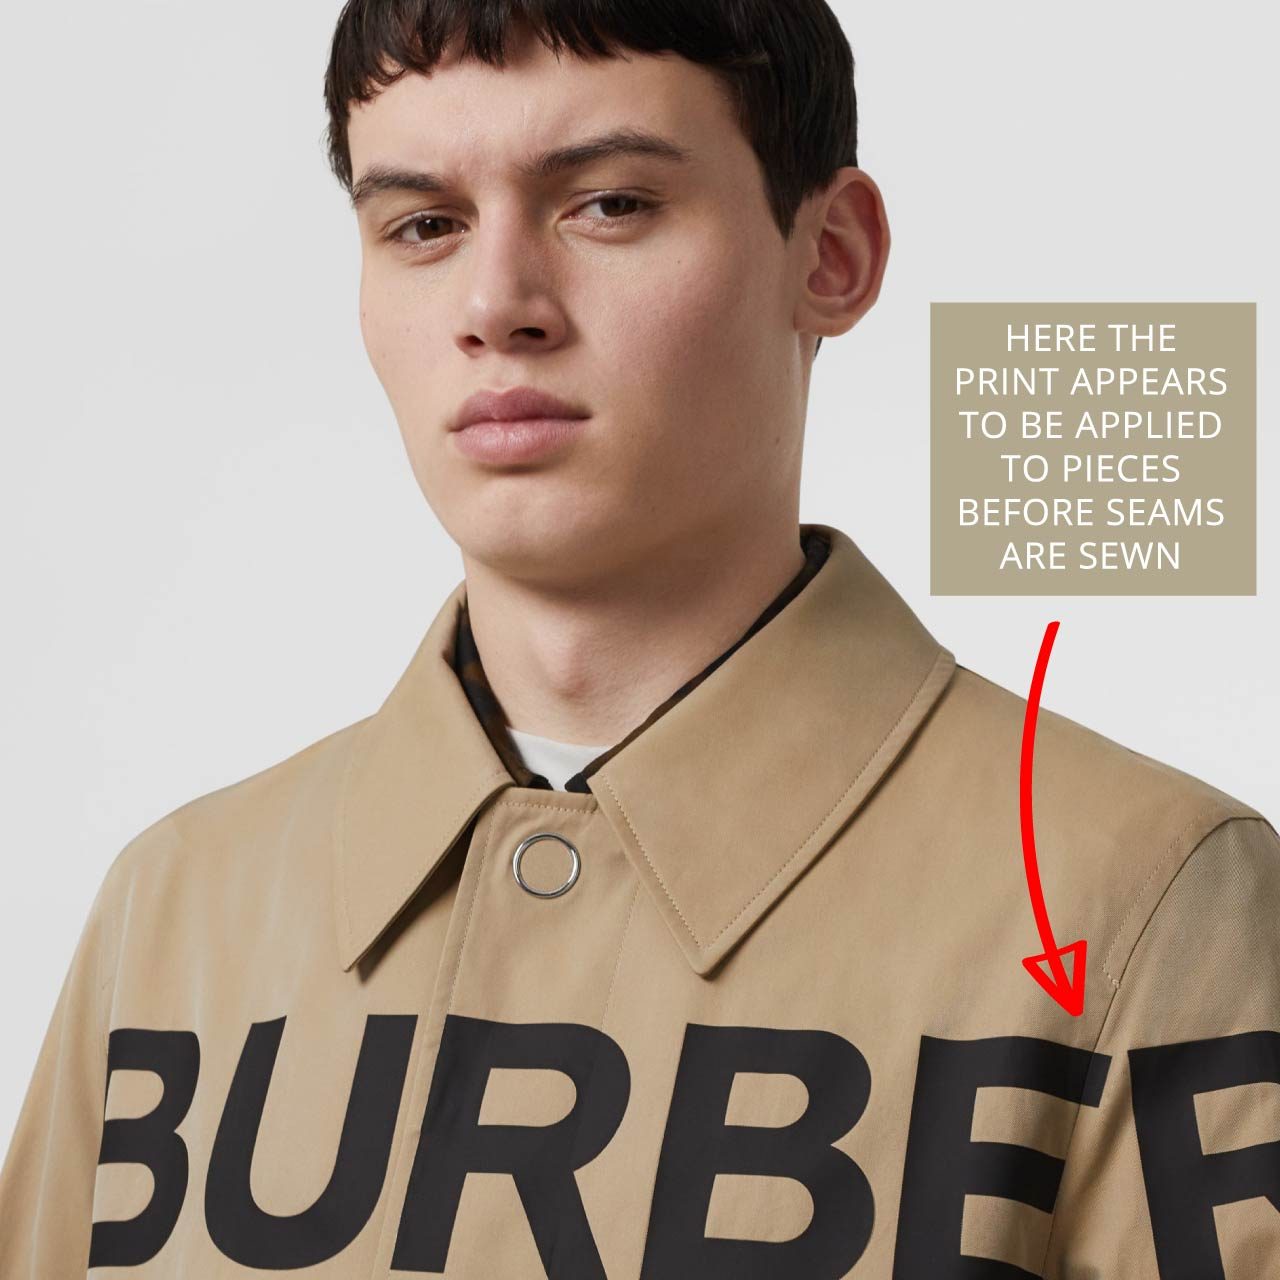 Print possibly applied onto fabric before seams are sewn. Burberry car coat, The Cutting Class.